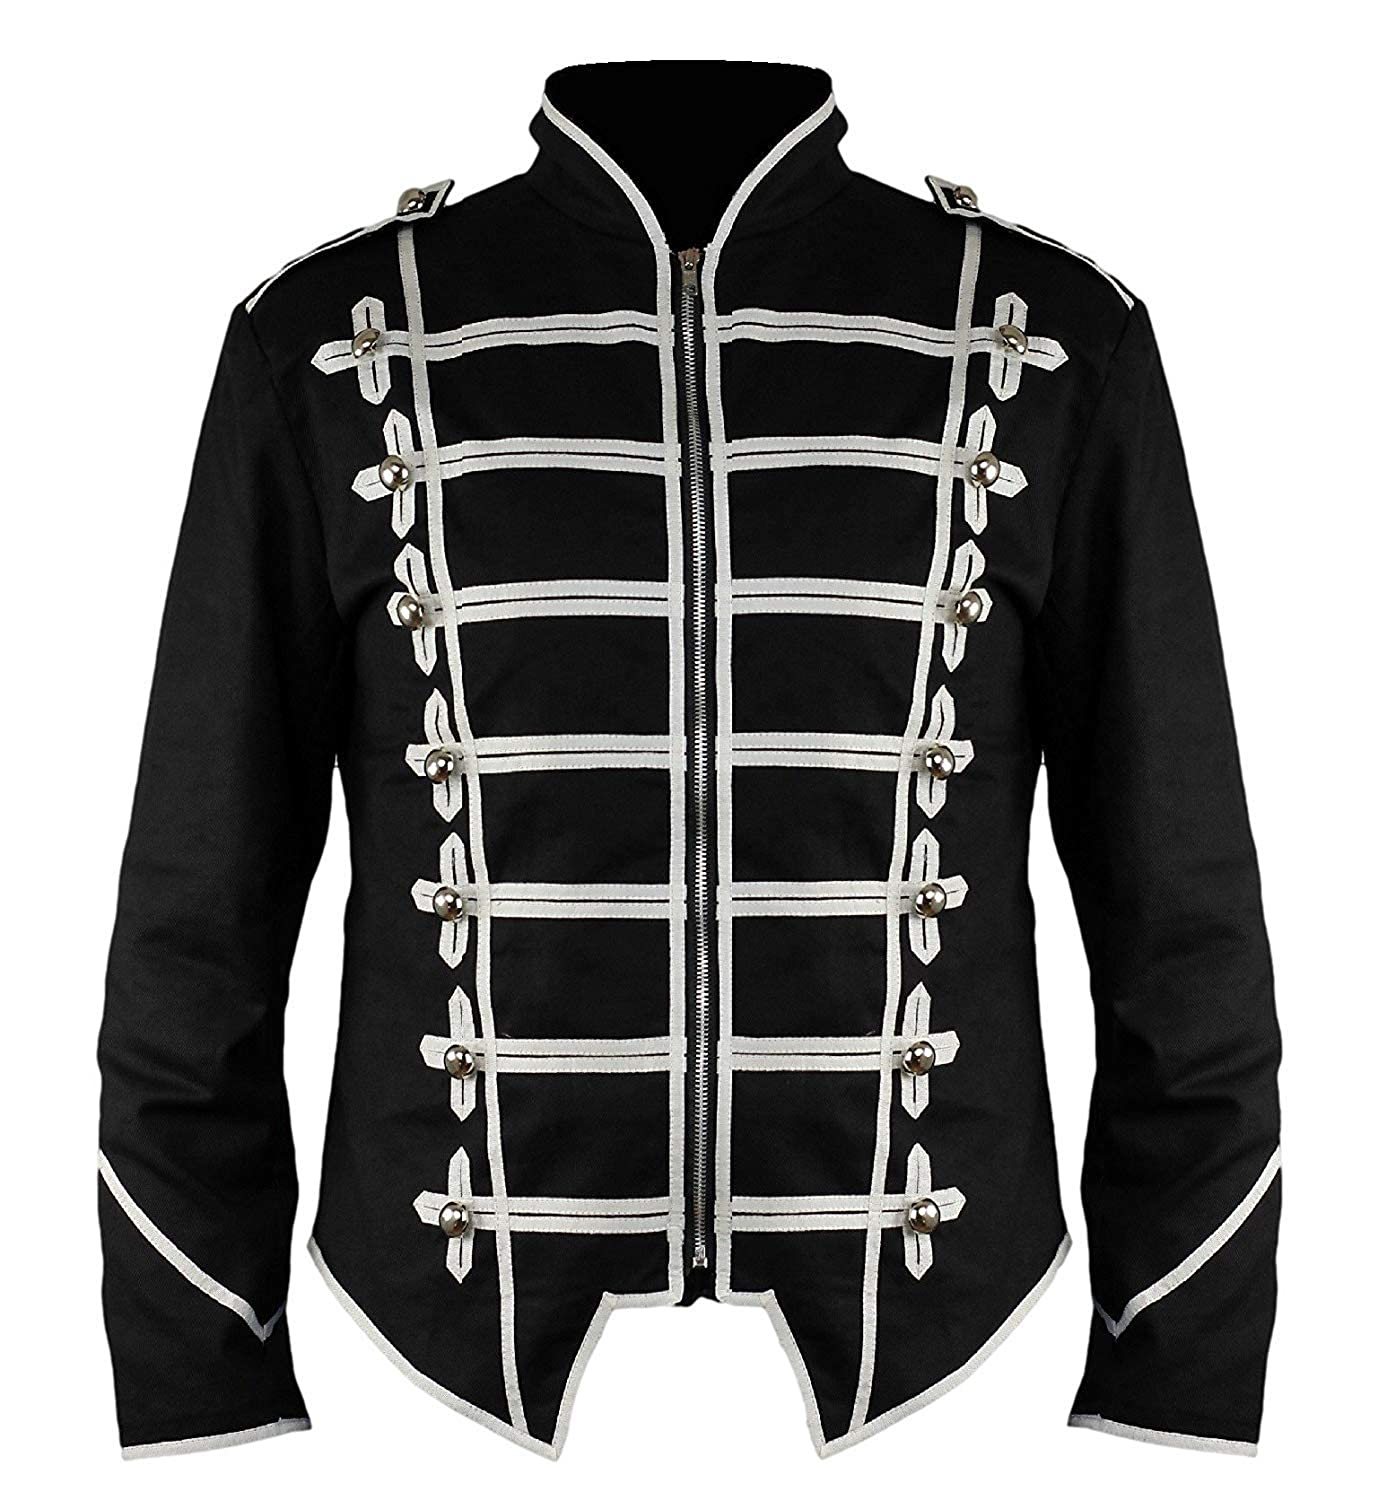 Ro Rox New Steampunk Military Drummer Emo MCR Punk Gothic Parade Jacket